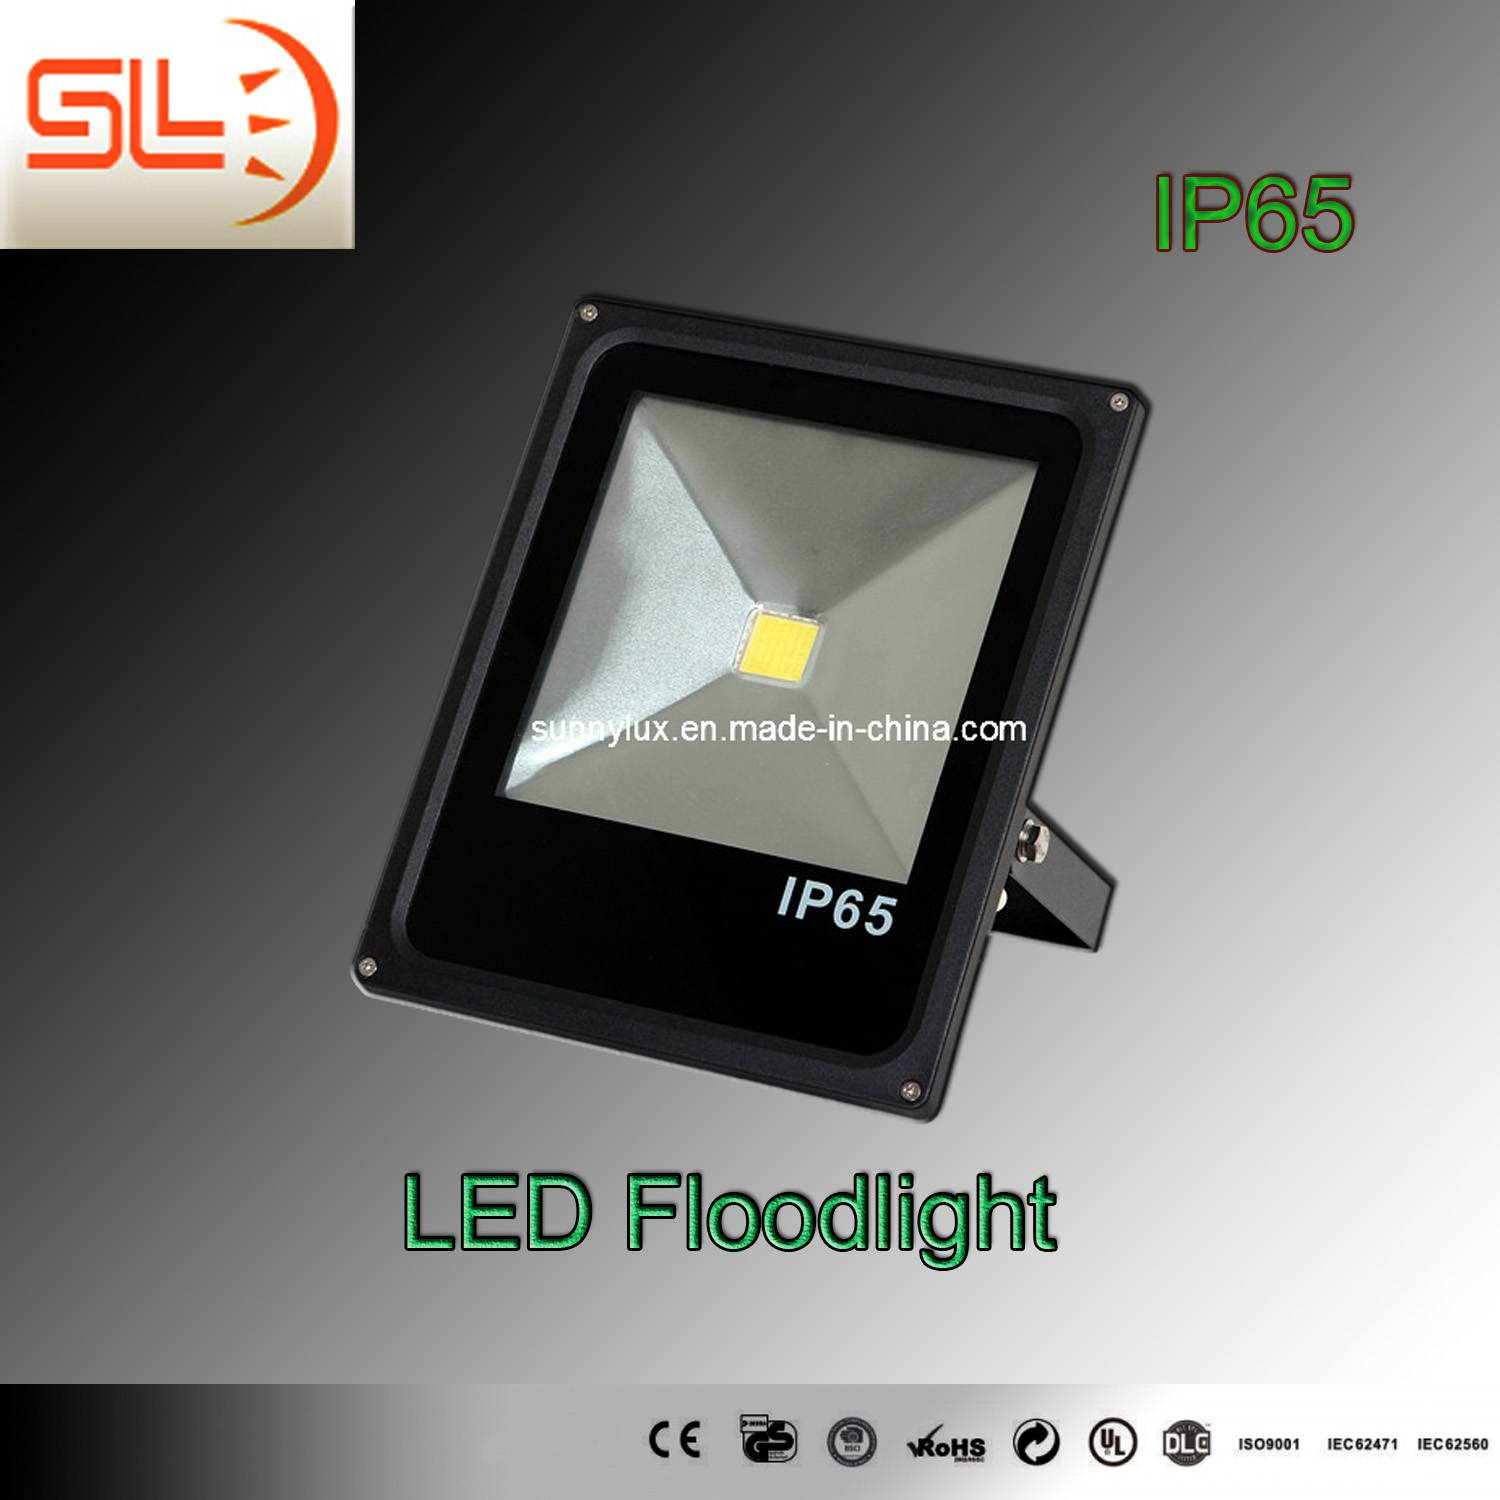 LED Floodlight in IP65 with CE RoHS